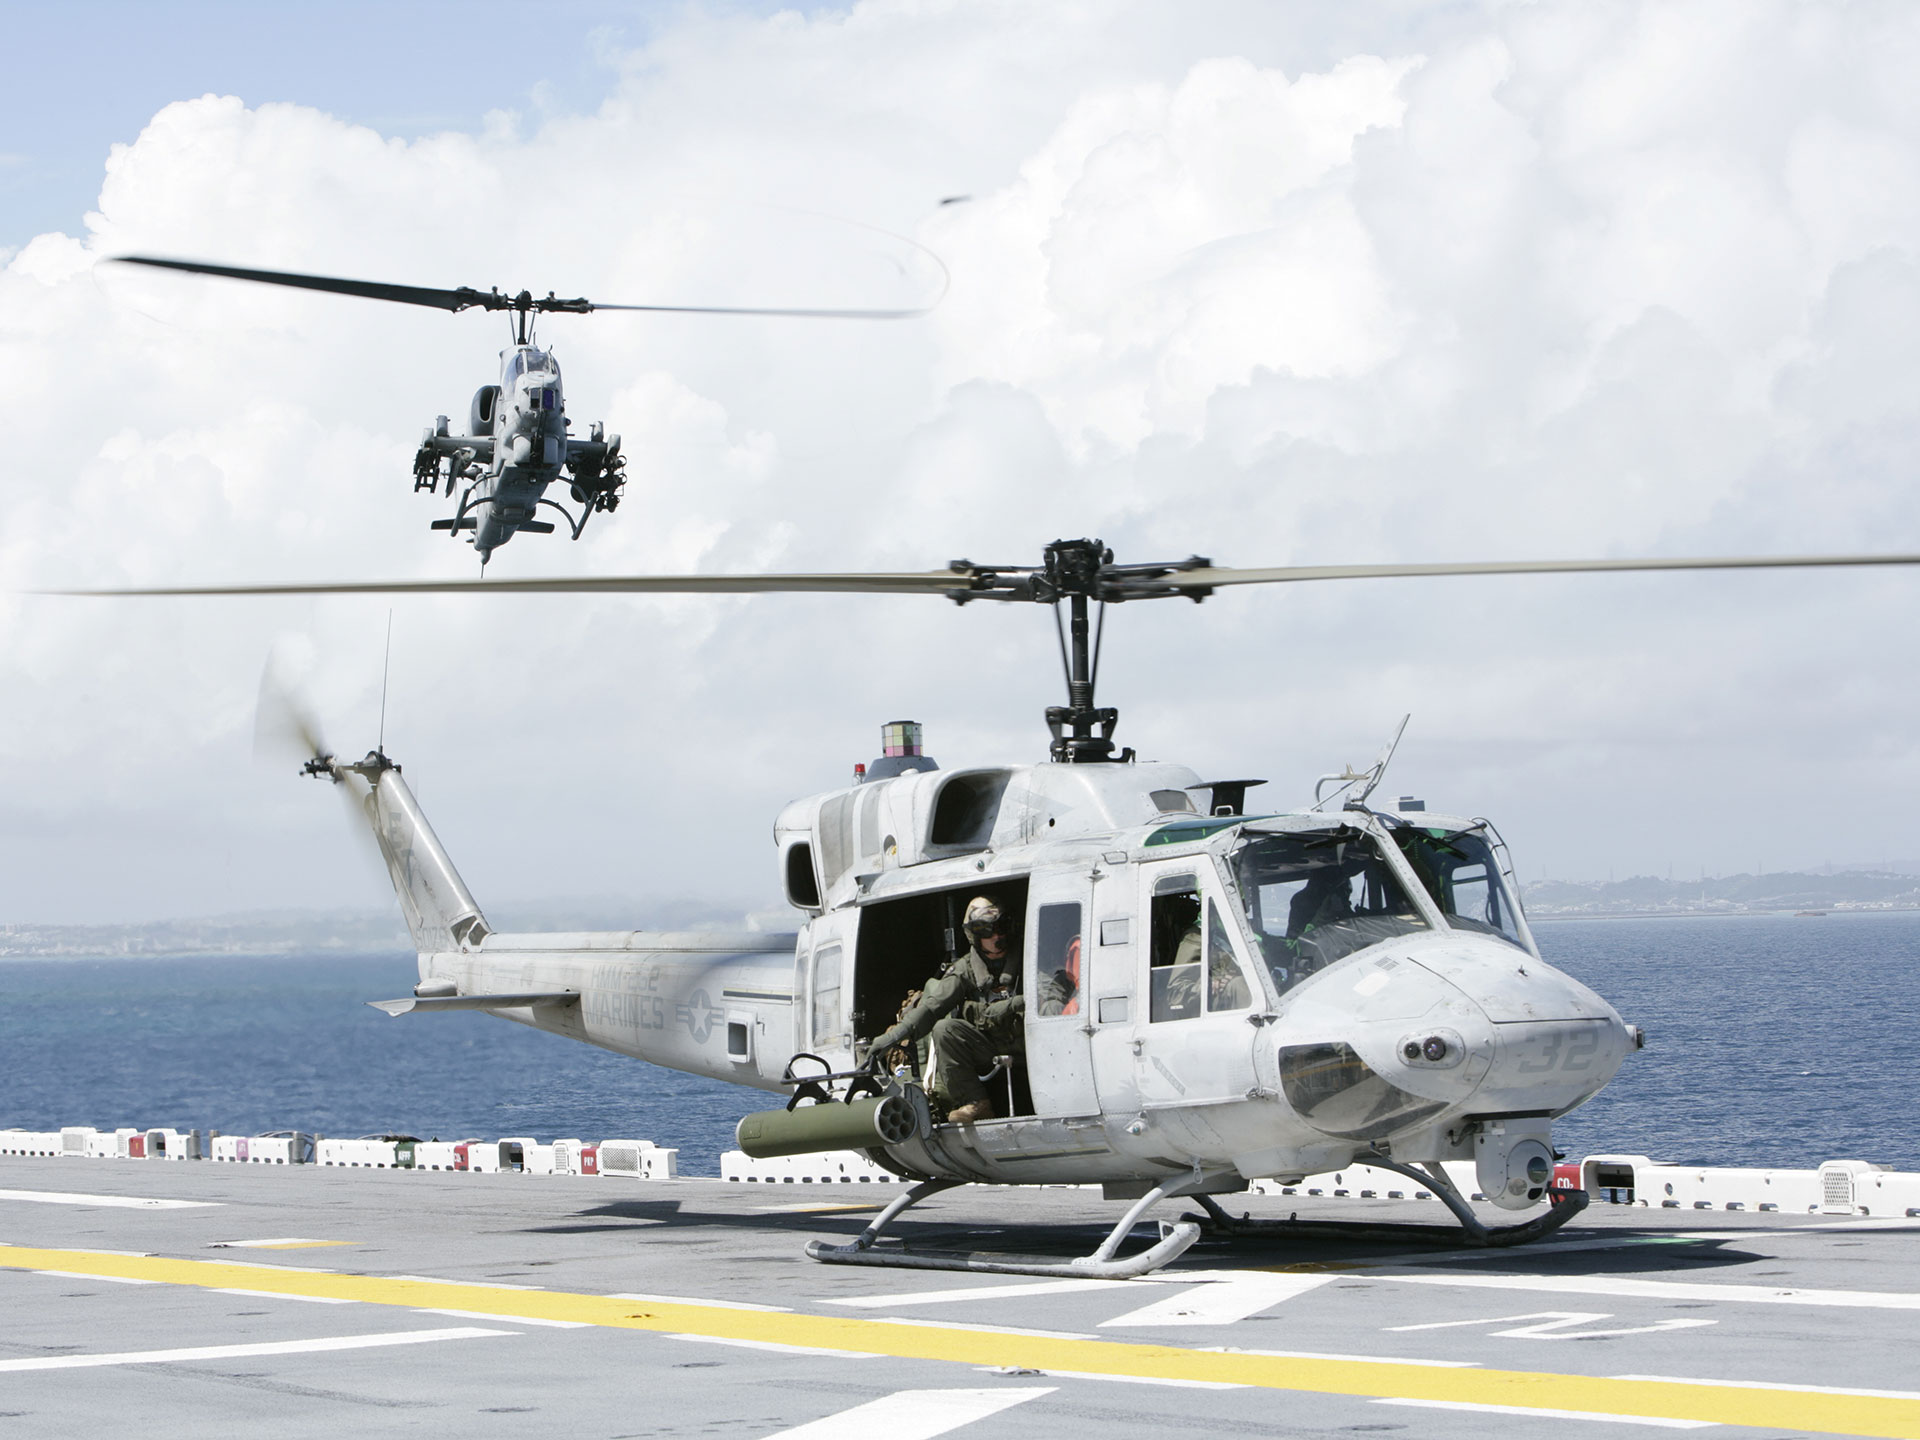 Awesome Army Helicopter Wallpaper Desktop 635 Wallpaper with 1920x1440 1920x1440